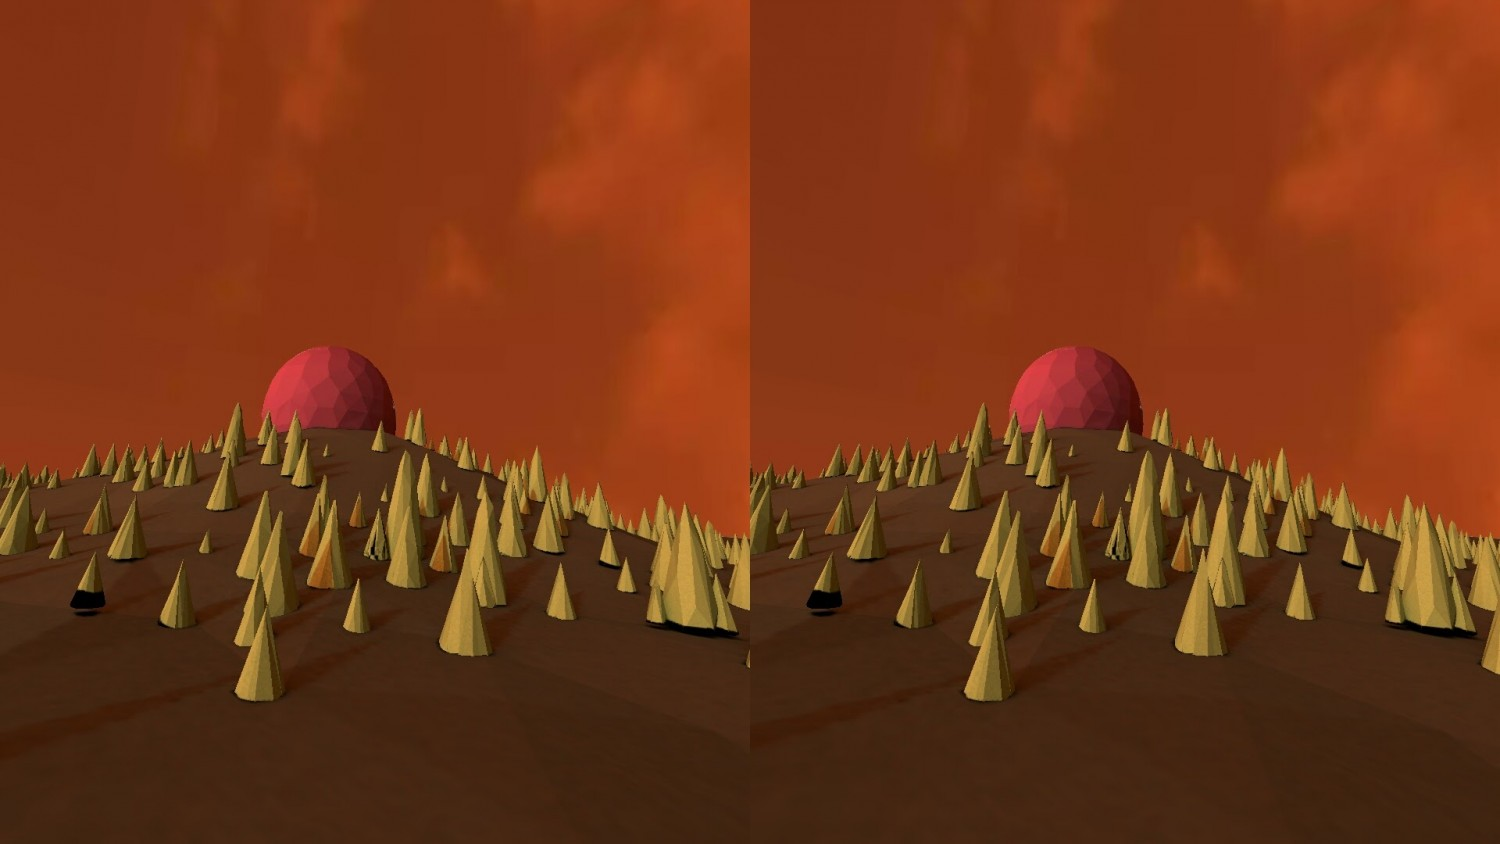 Breathing scape - A-Frame web experiment - VR view printscreen / browser on phone